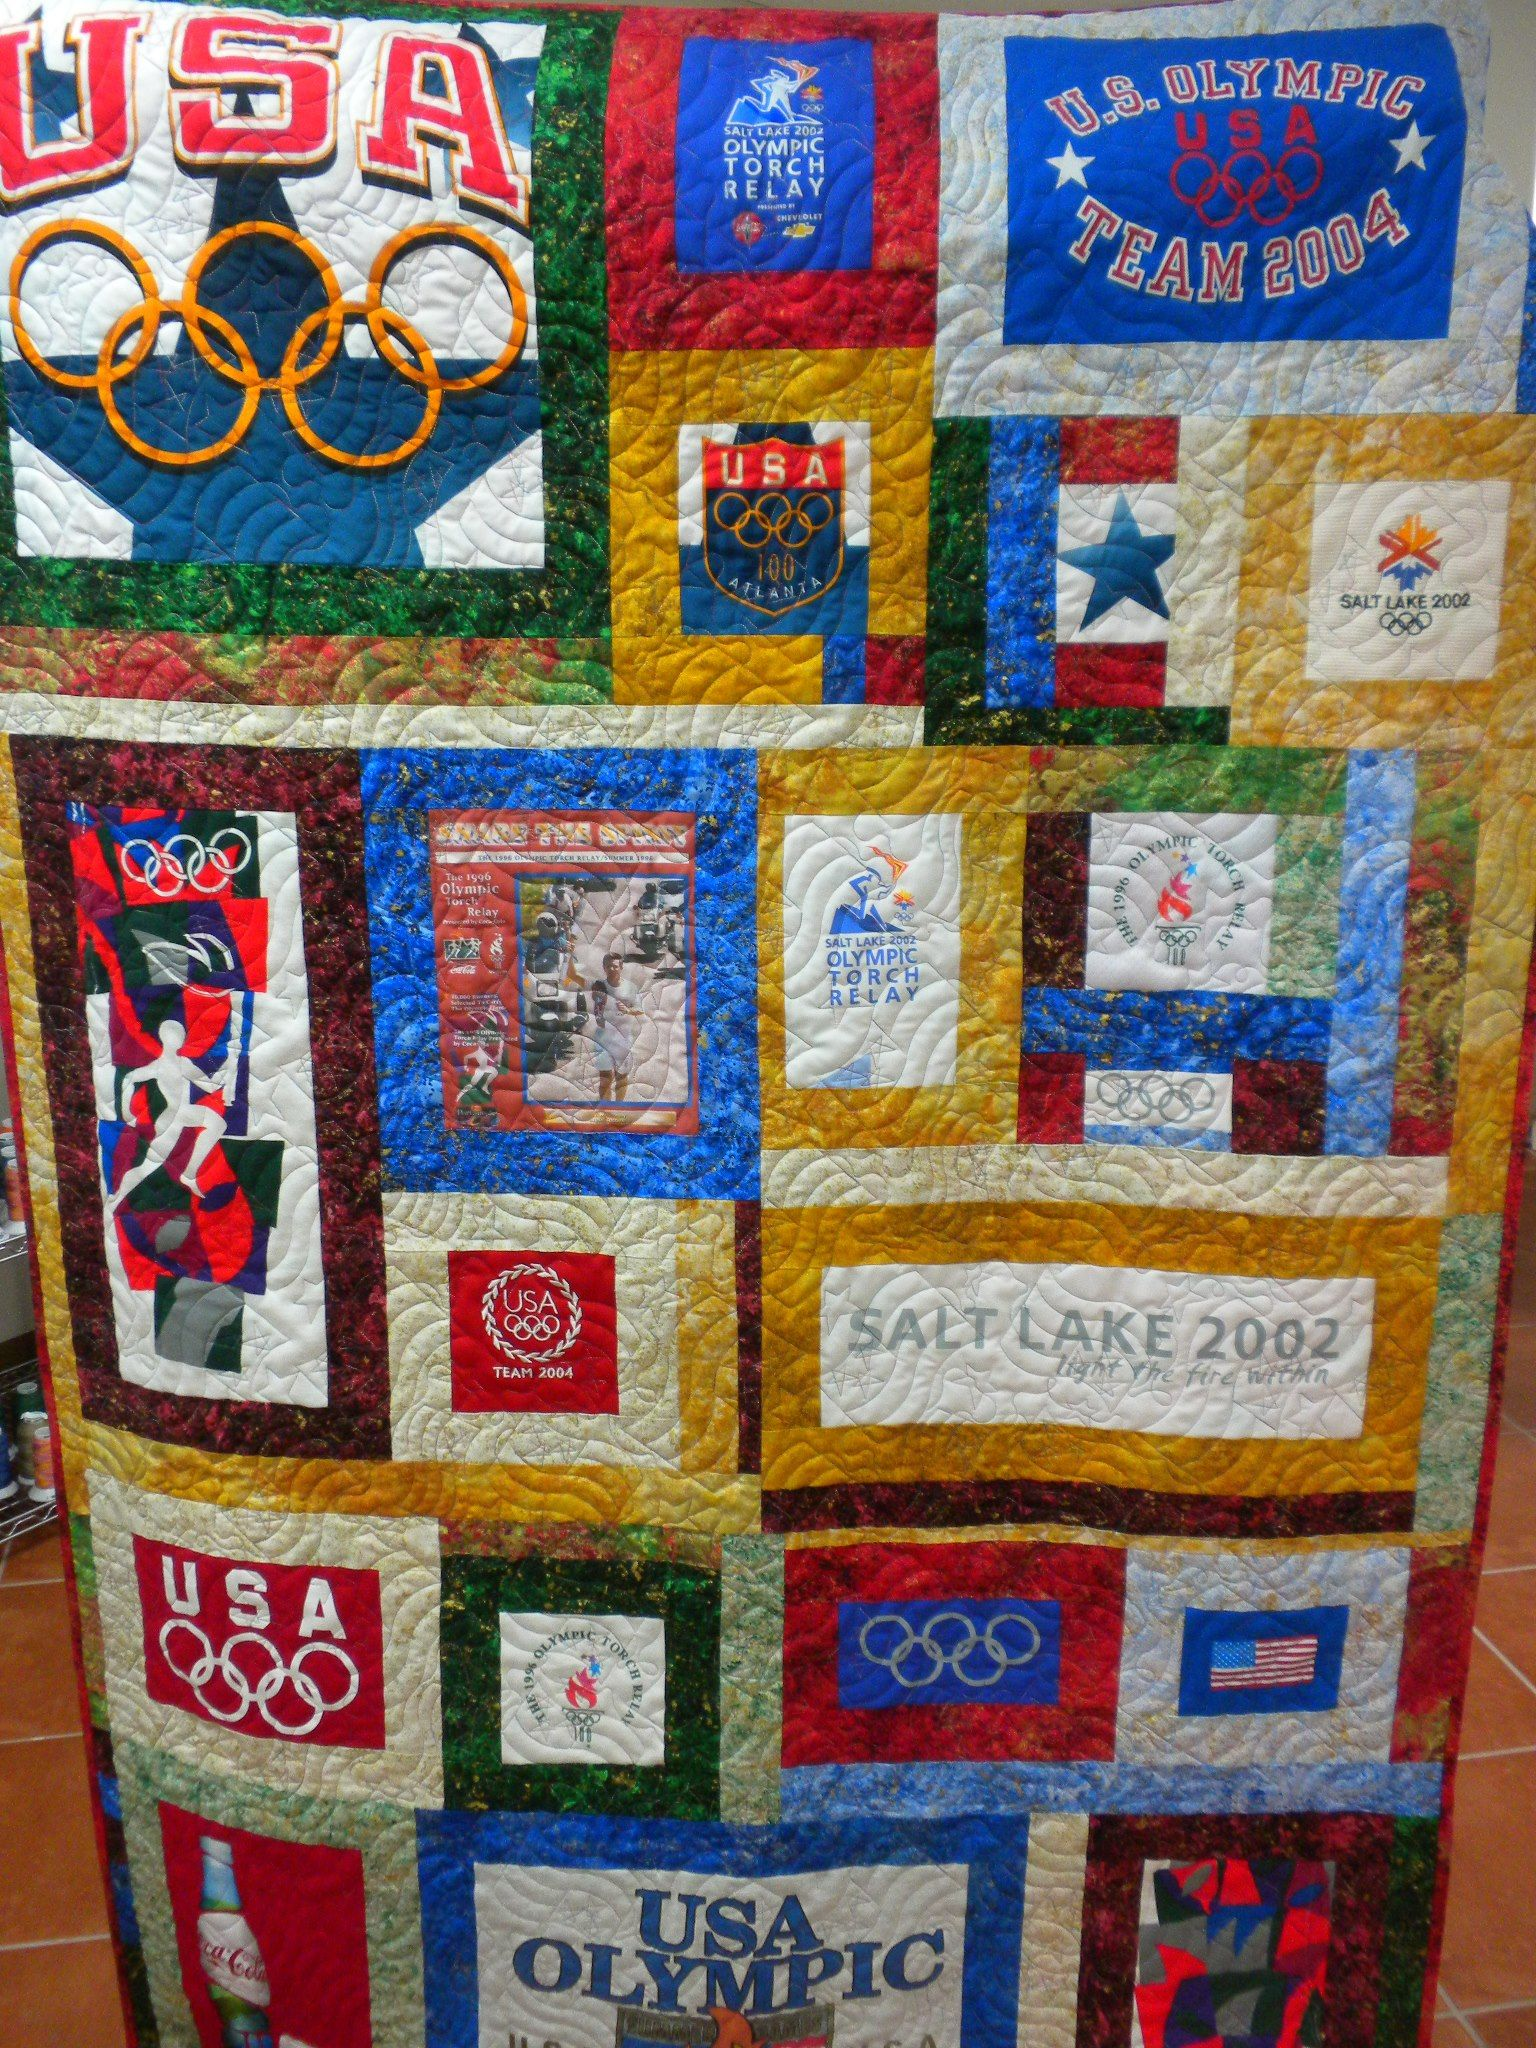 Olympic T Shirt quilt by Kokopelli Quilt Co. New Mexico | Olympics ... : t shirt quilt company - Adamdwight.com